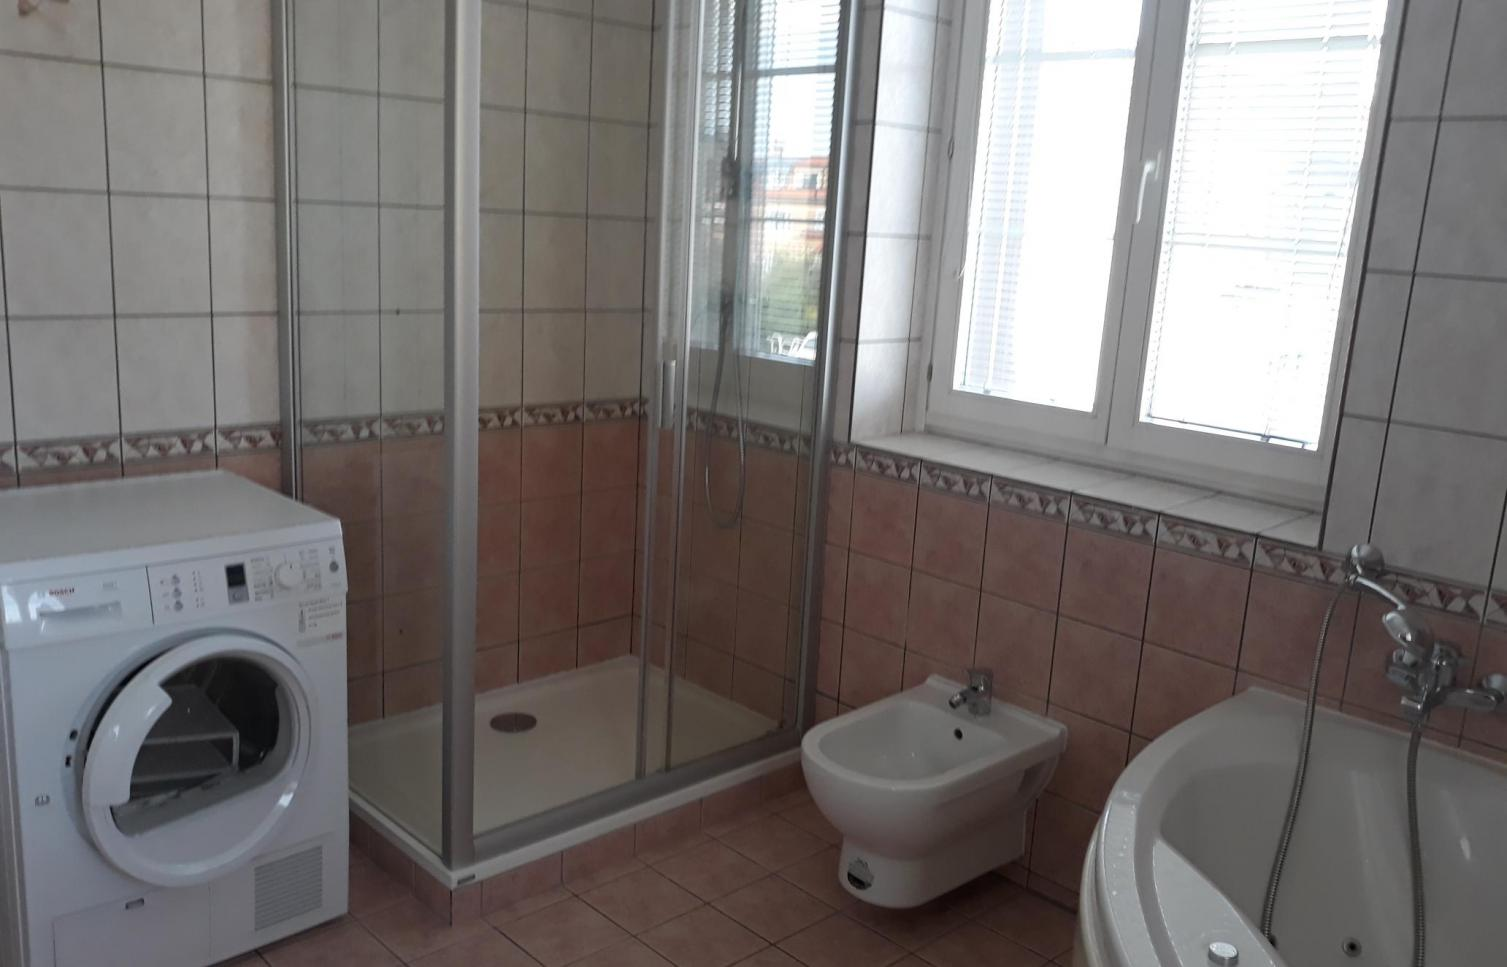 HOUSE FOR RENT, street K Chumberku, Praha-Suchdol